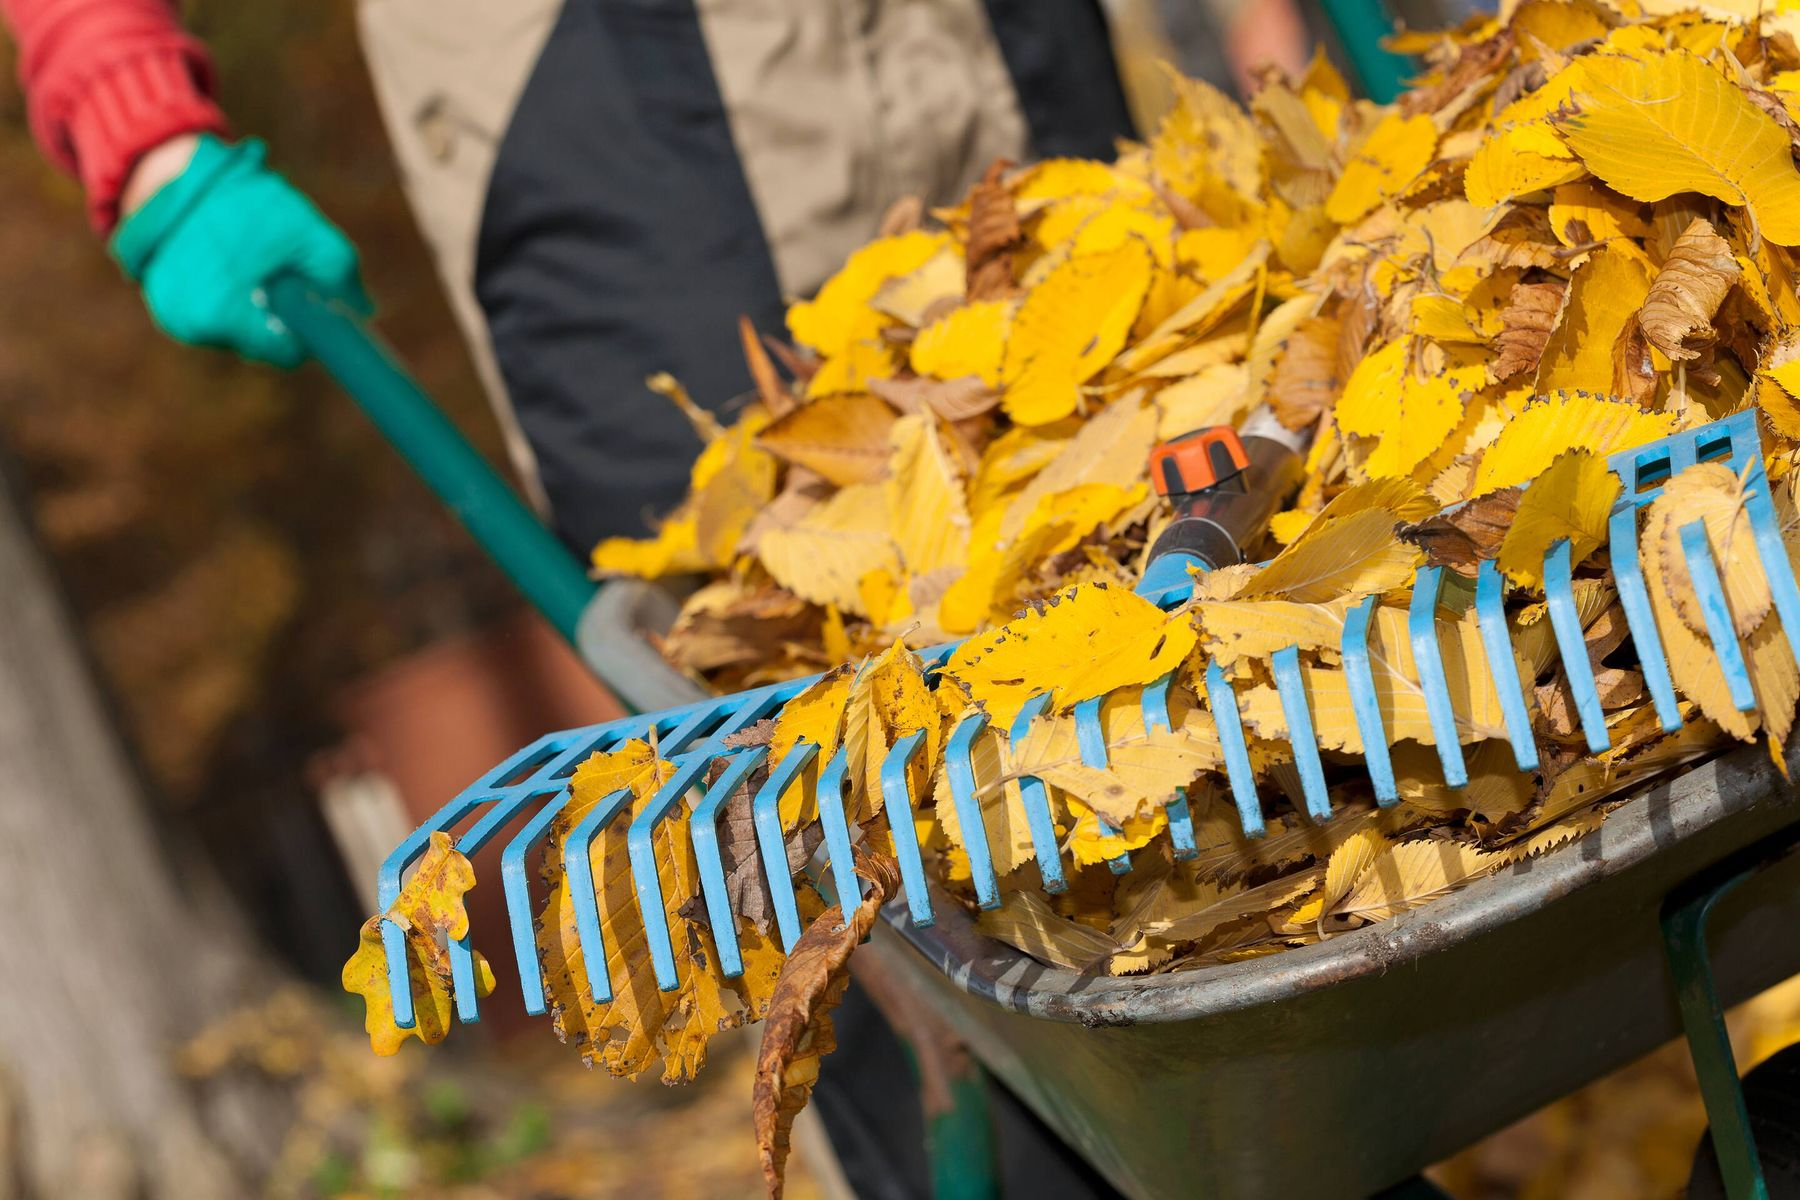 making leaf mould with autumn leaves